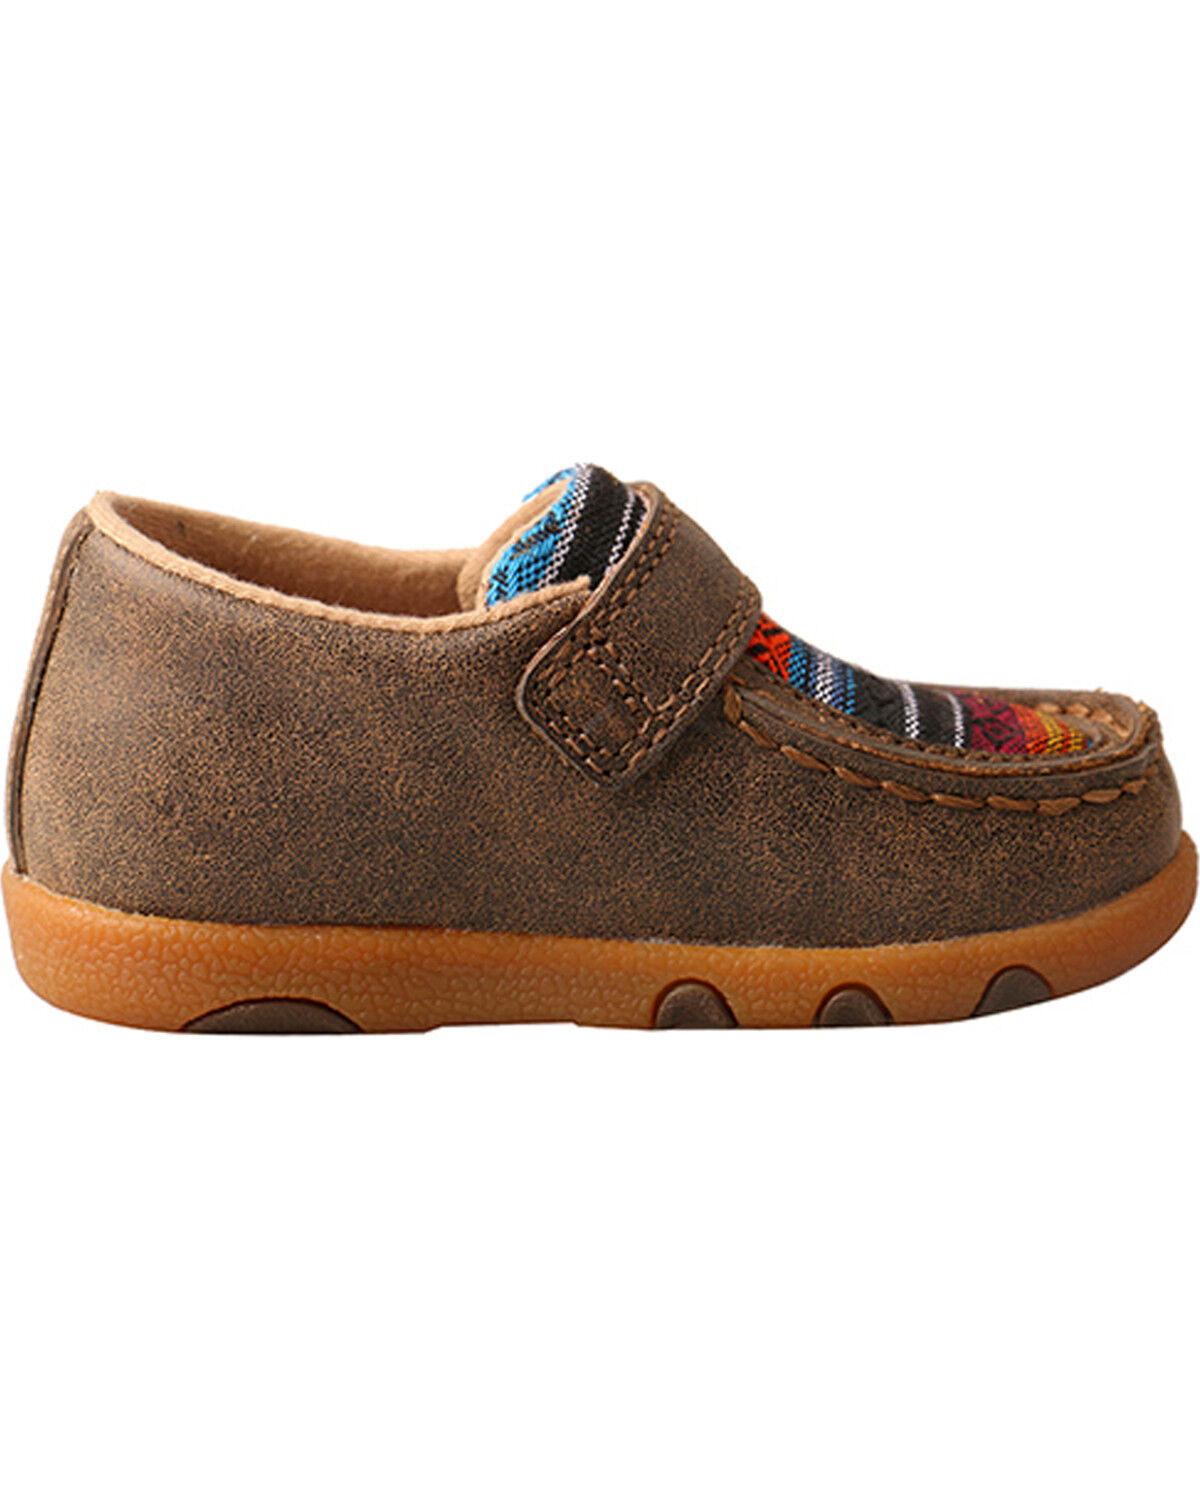 Twisted X Kids Girls Tan//Multi-color Leather Serape Casual Boots